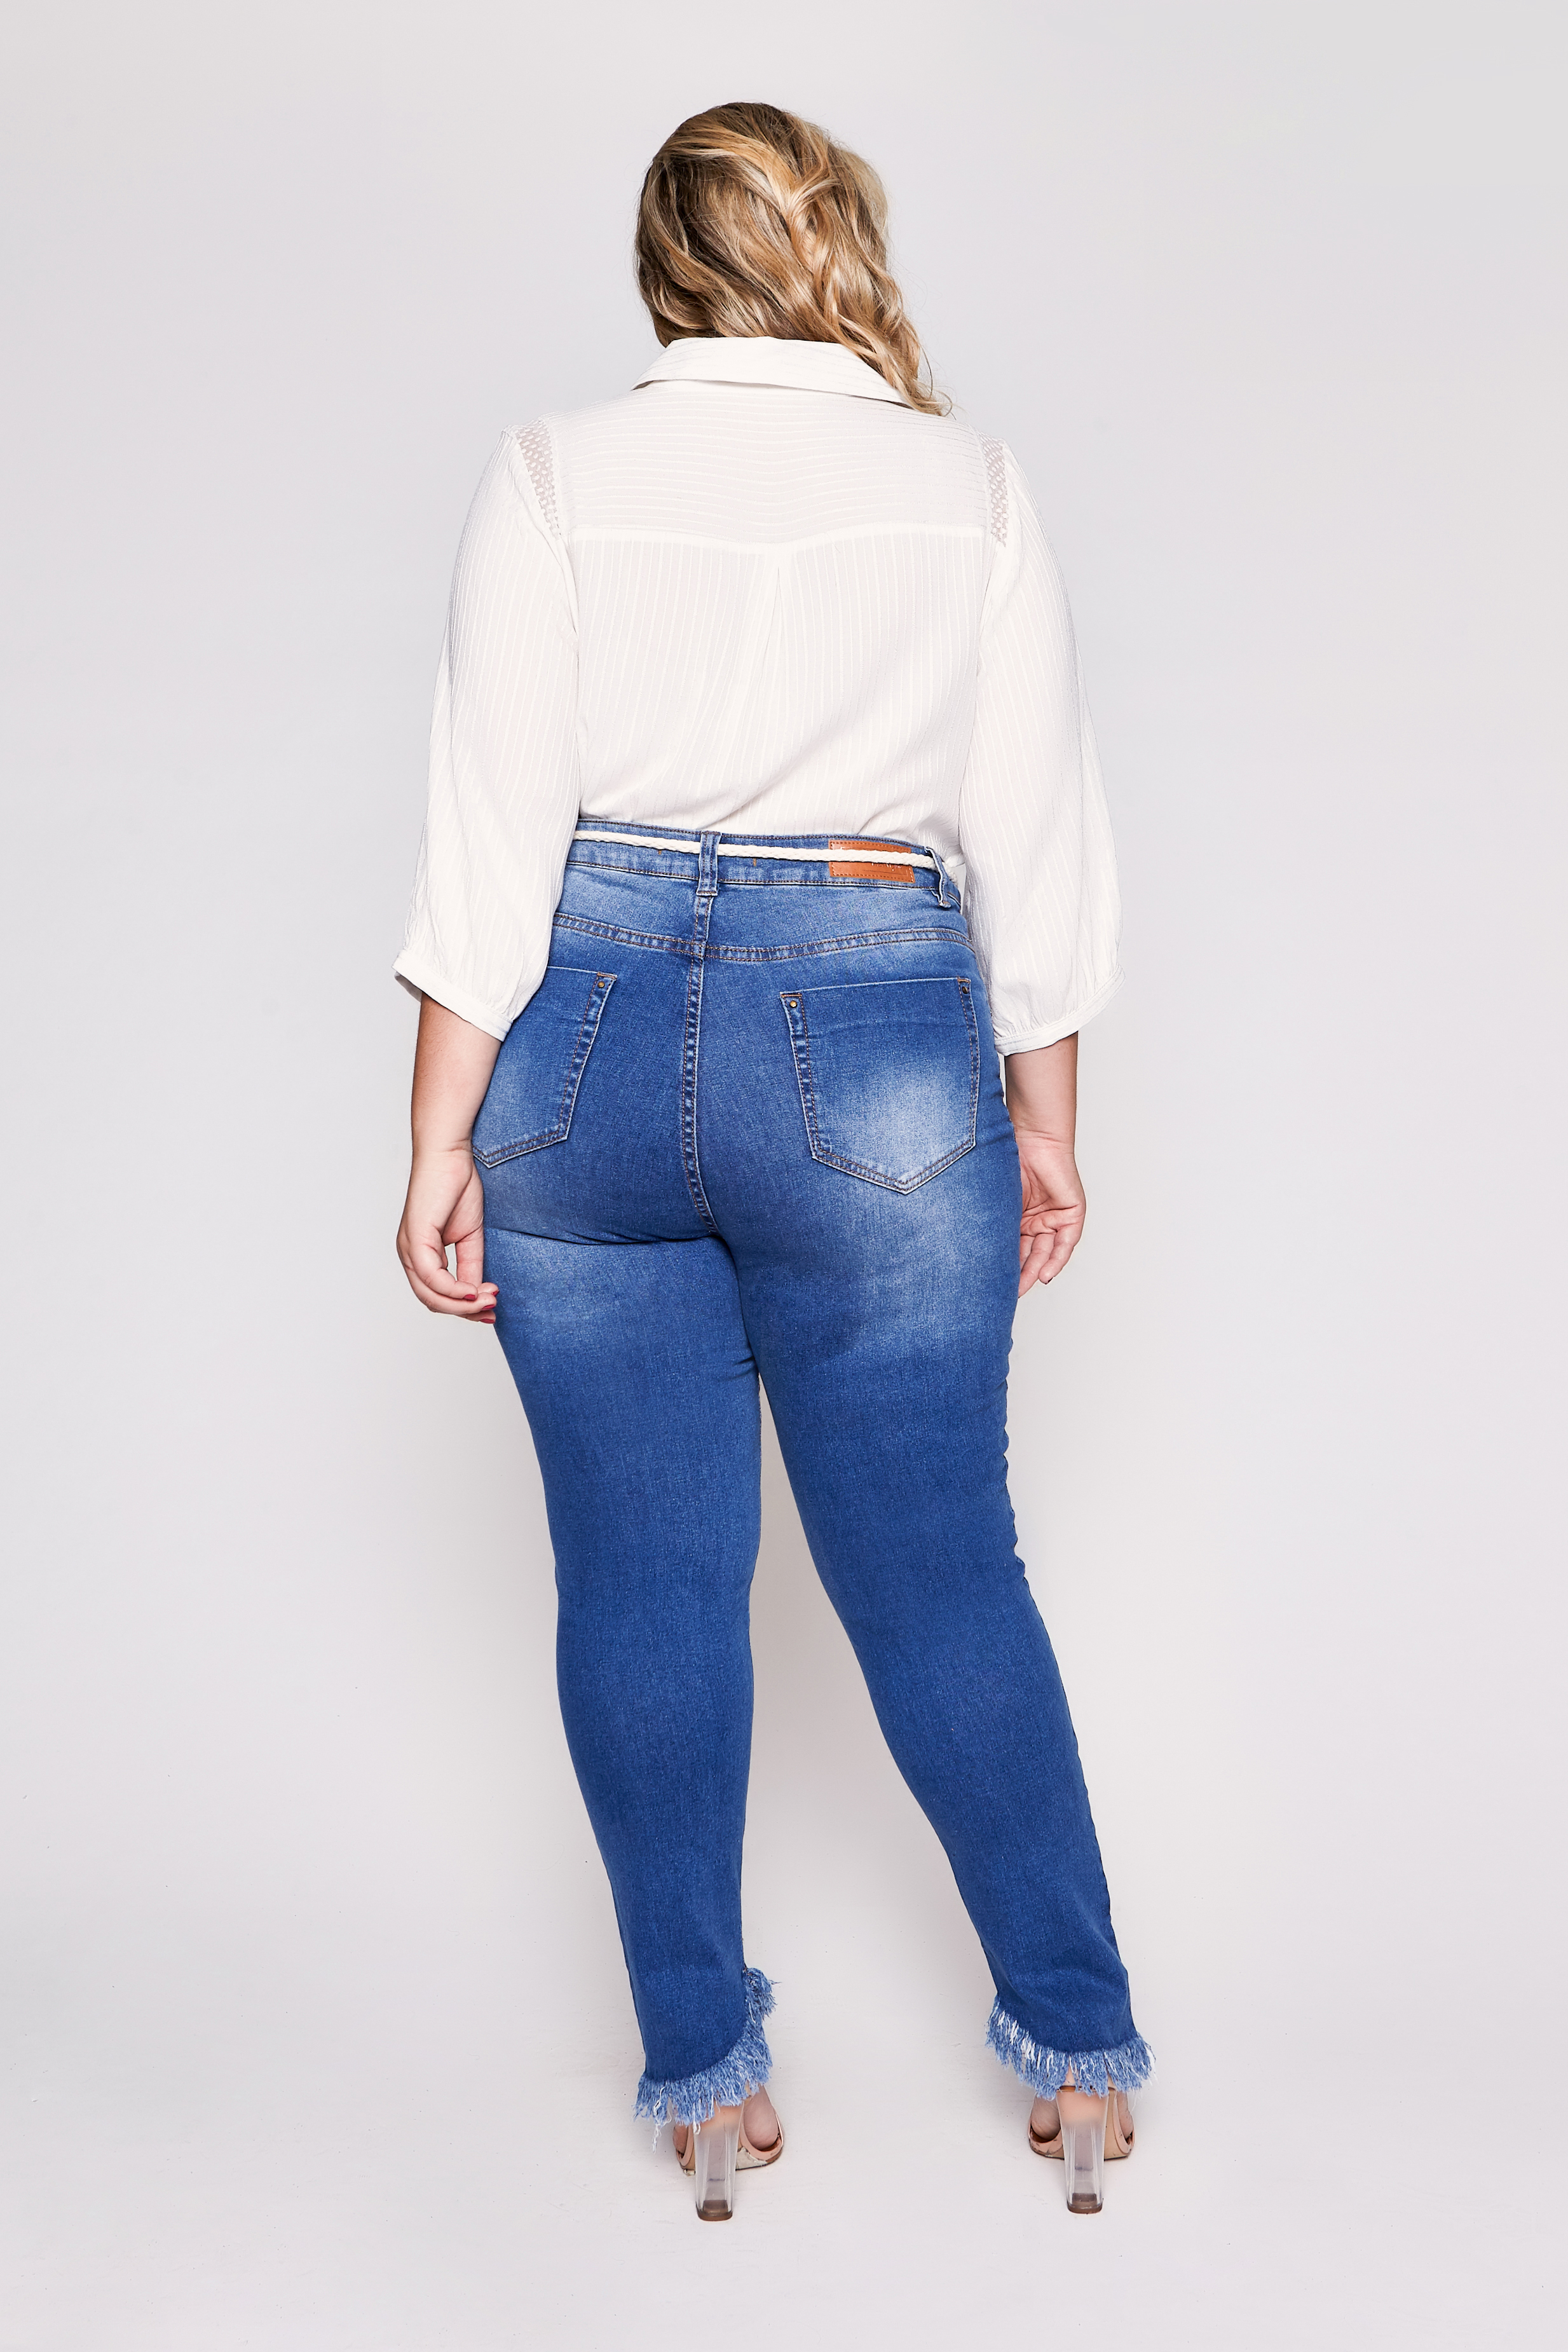 0310329_Calca_Jeans_Destroyed_Kaia_4